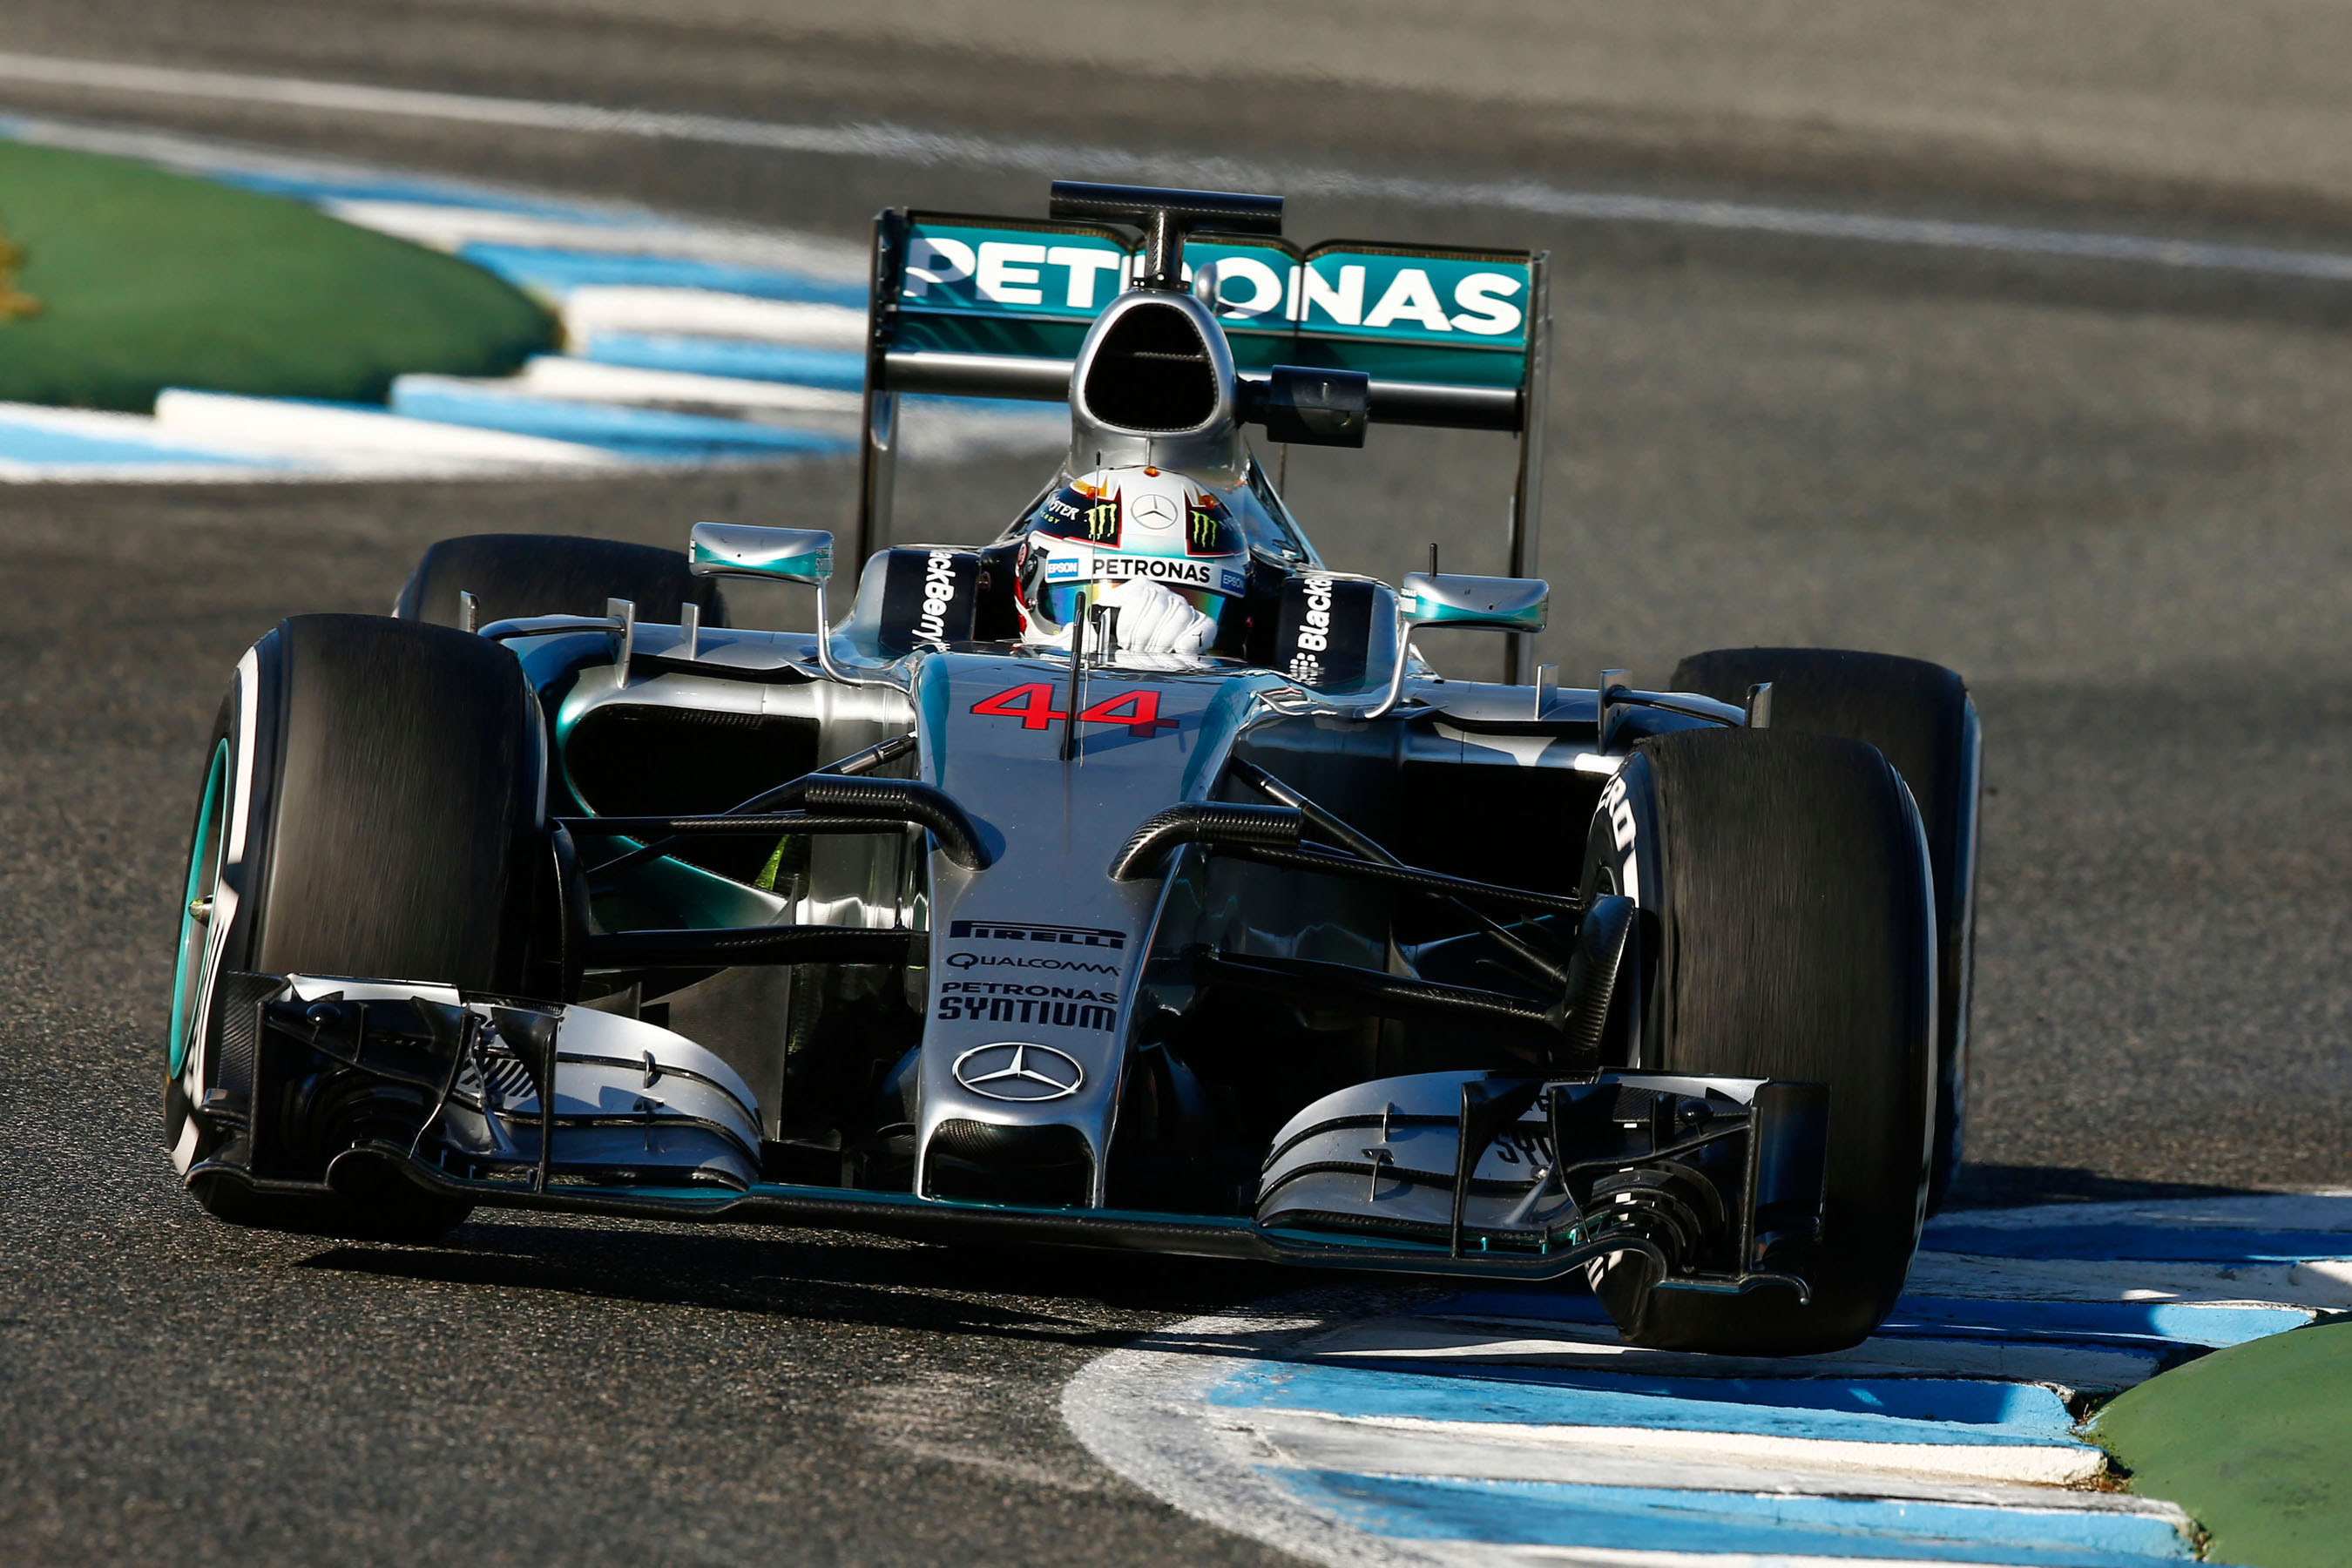 Qualcomm joins the MERCEDES AMG PETRONAS Formula One team as official technology partner.